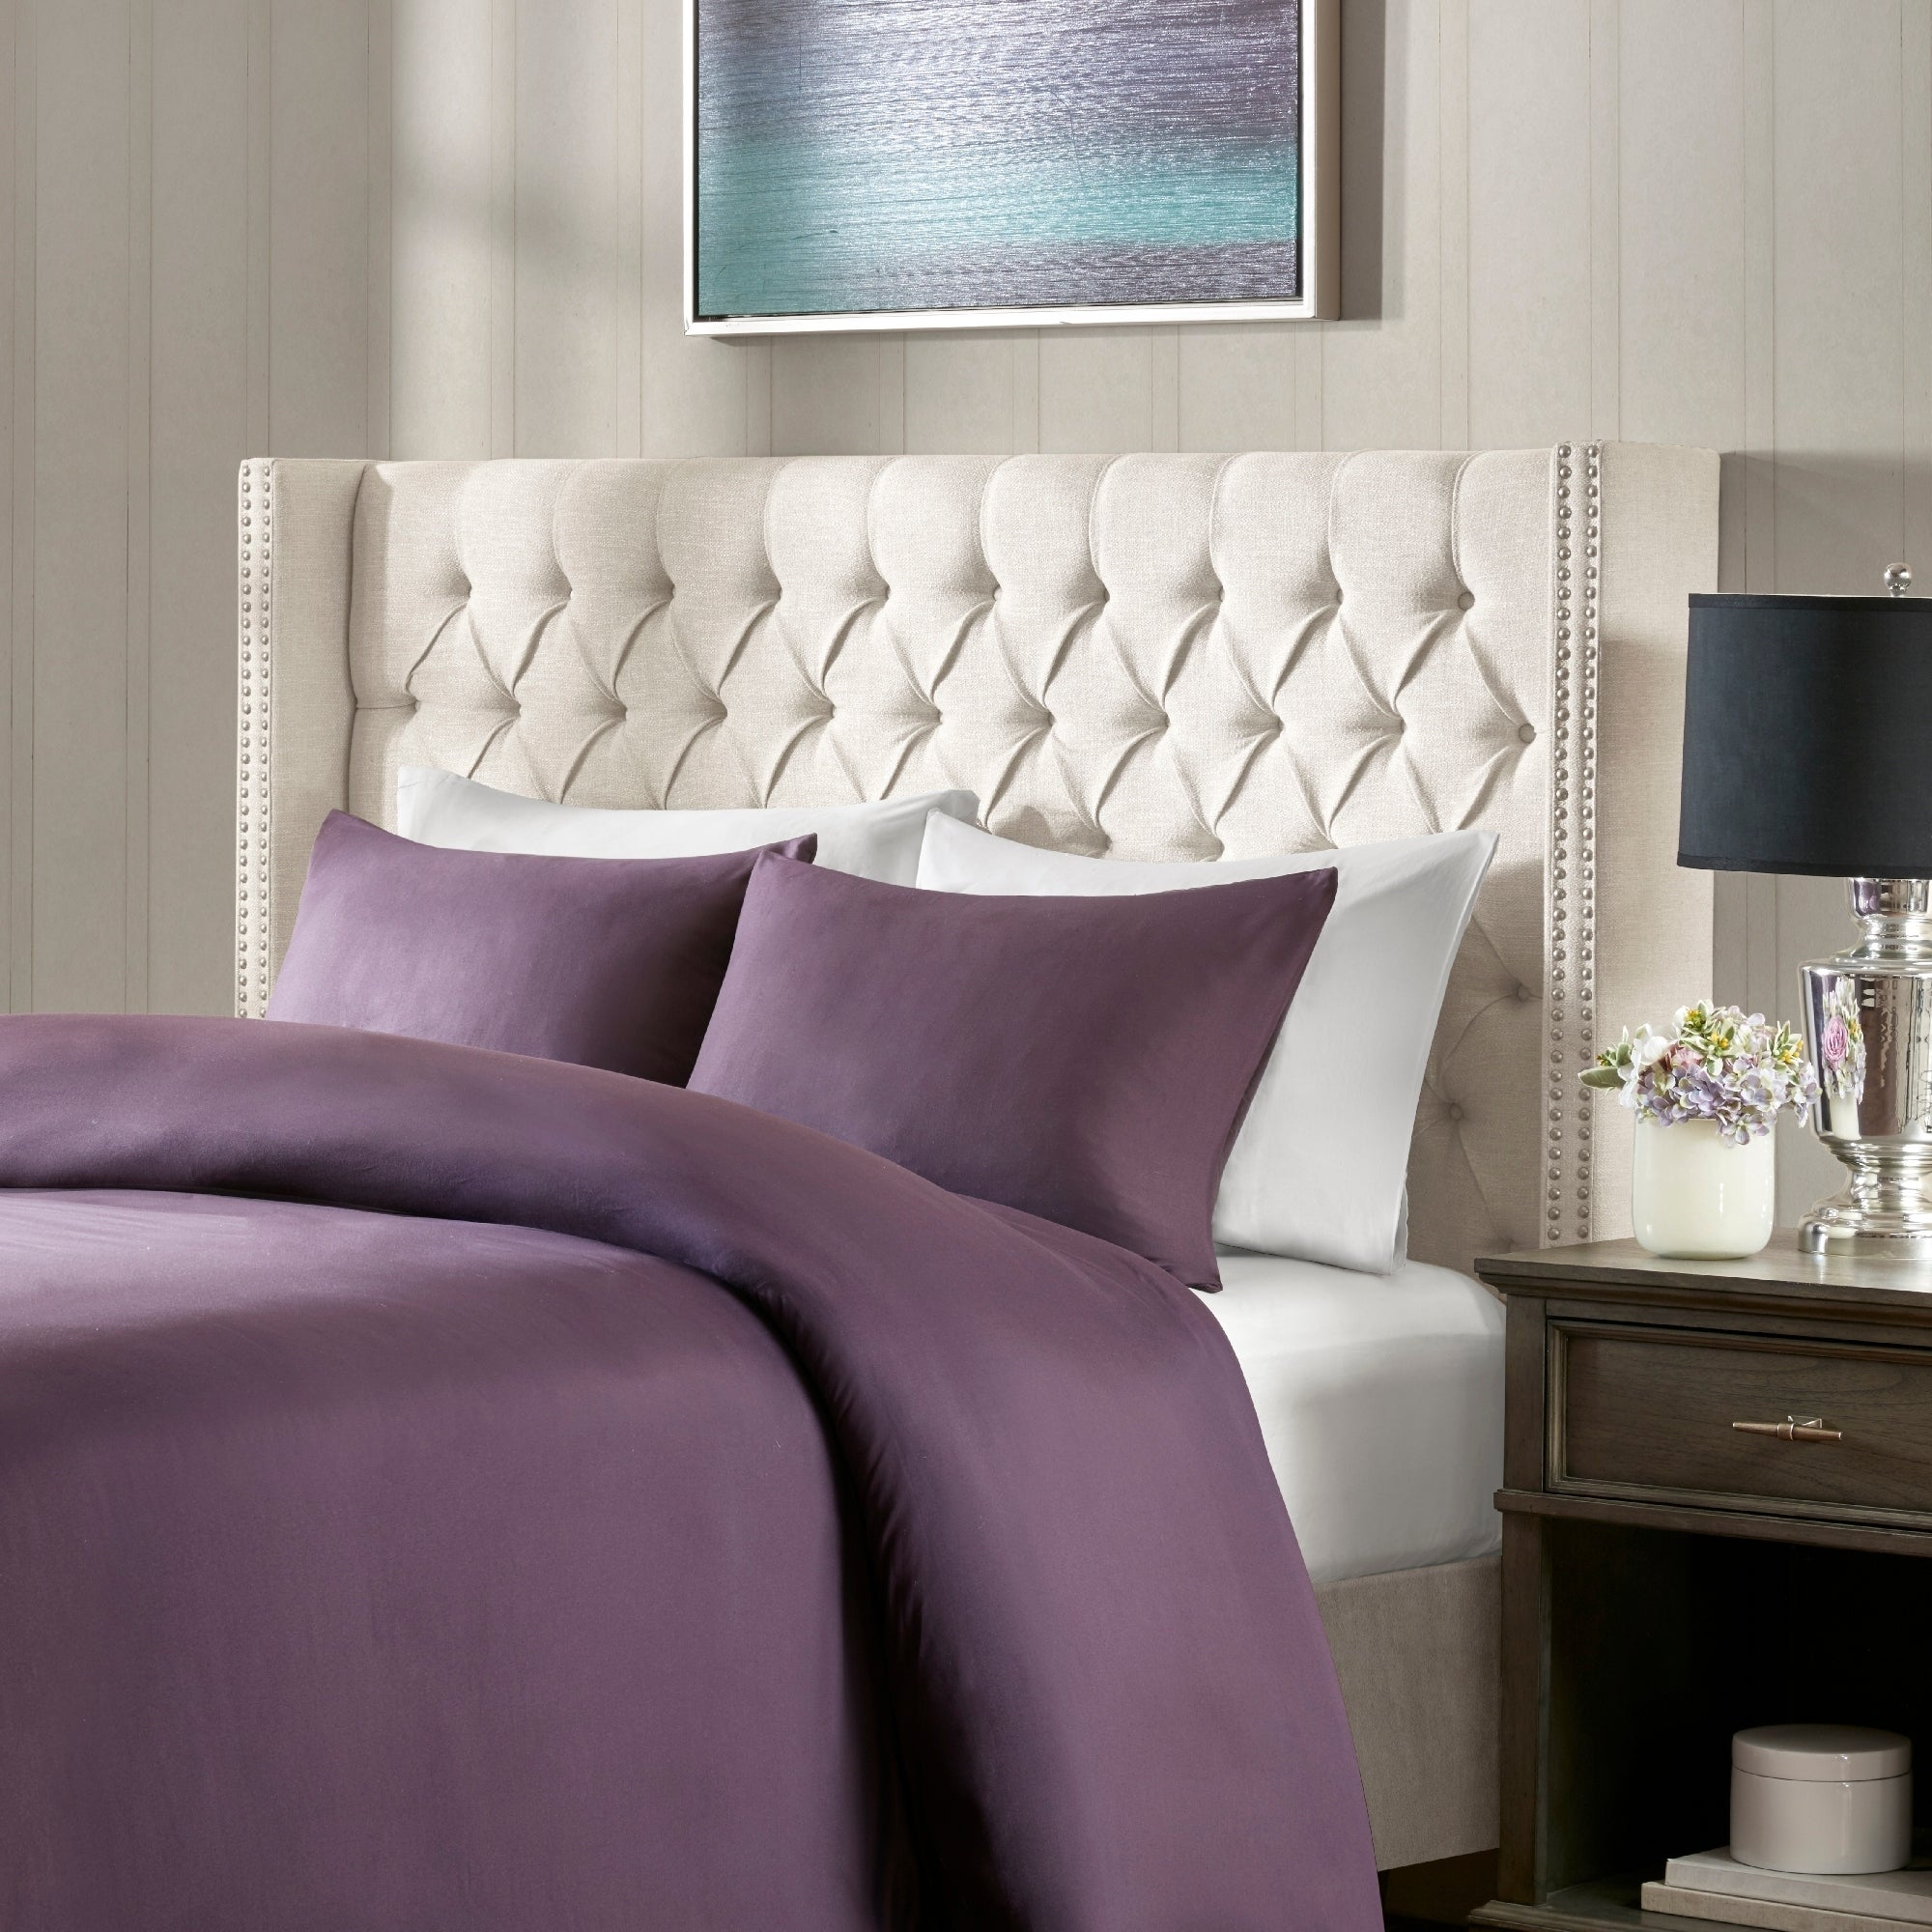 Charmant Madison Park Baldwin Upholstered Headboard